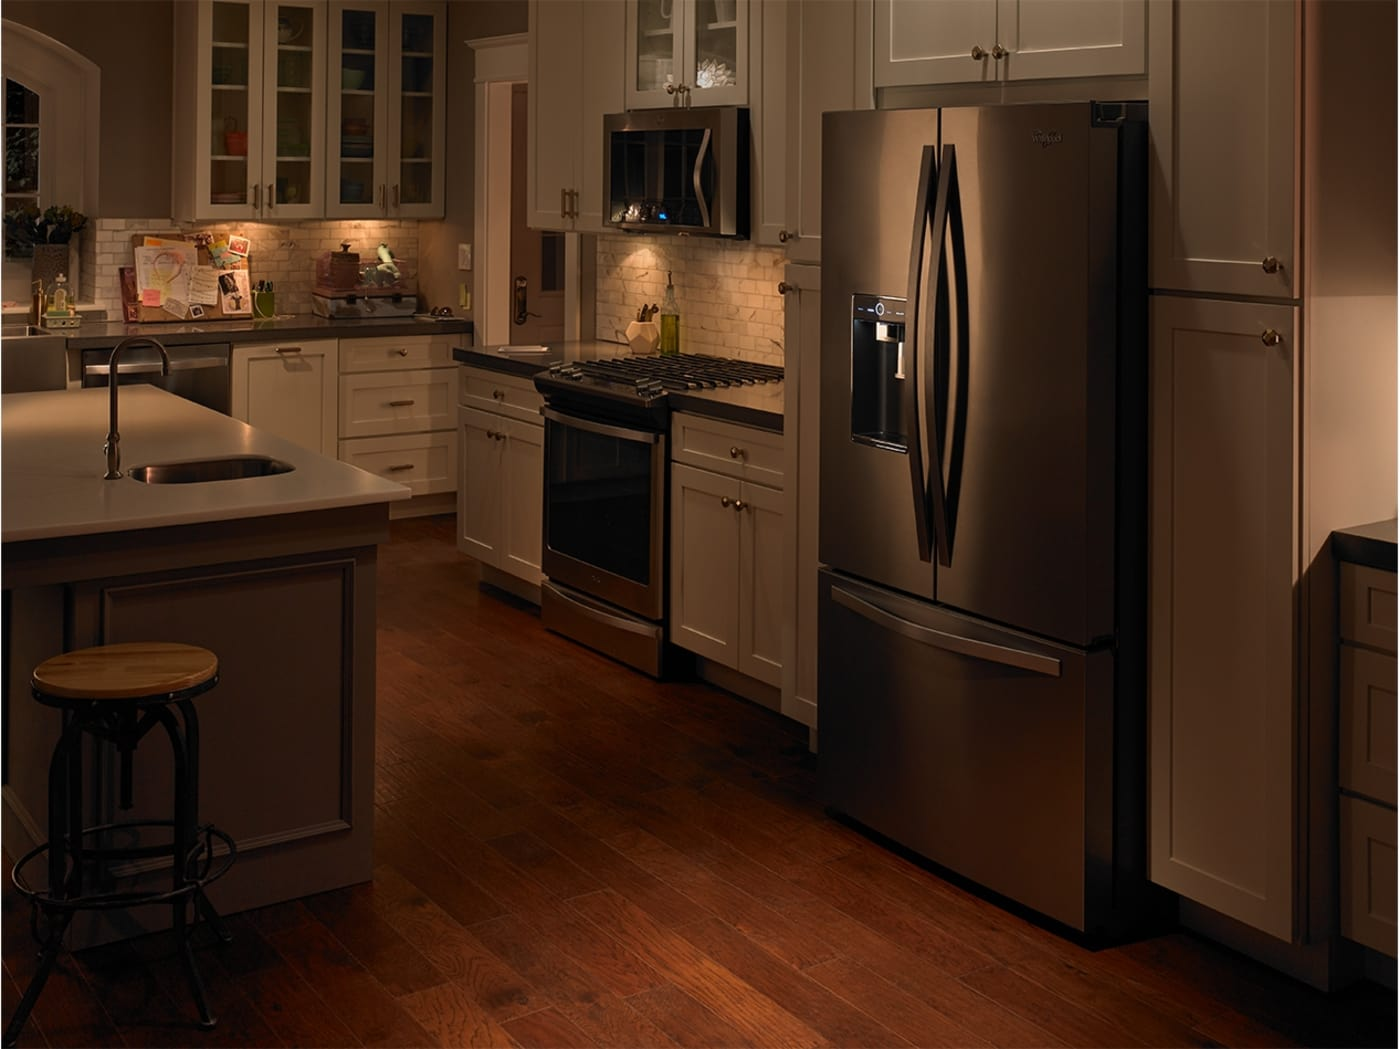 Wrf993fifm By Whirlpool French Door Refrigerators